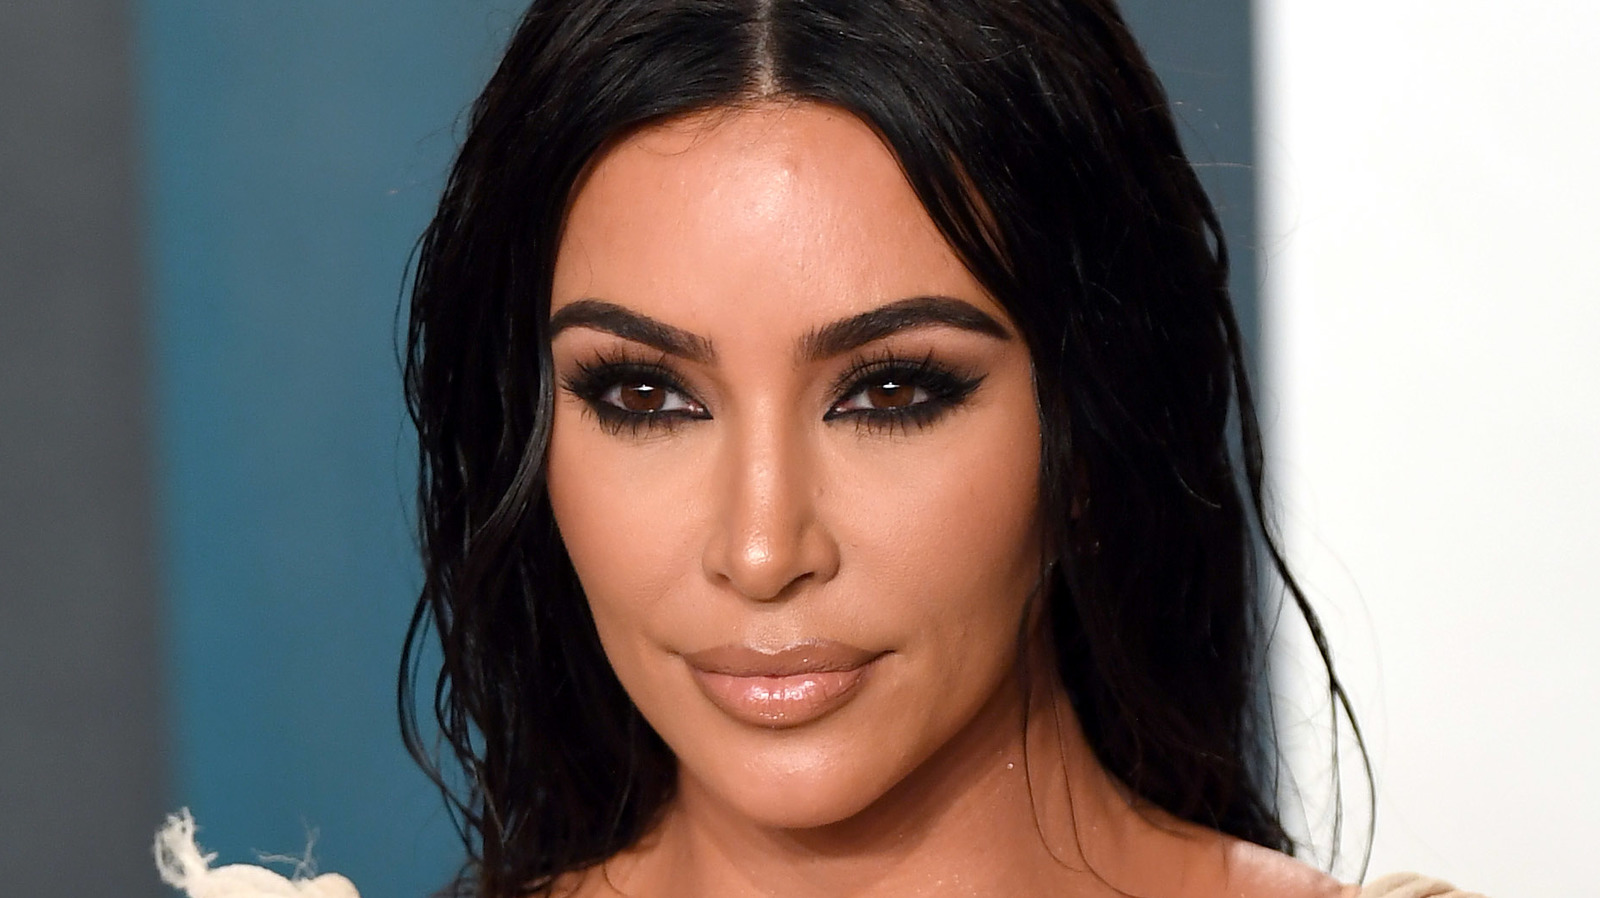 Inside The Telling Video Kim Kardashian Just Posted That Fans Think Is About Her Divorce.jpg